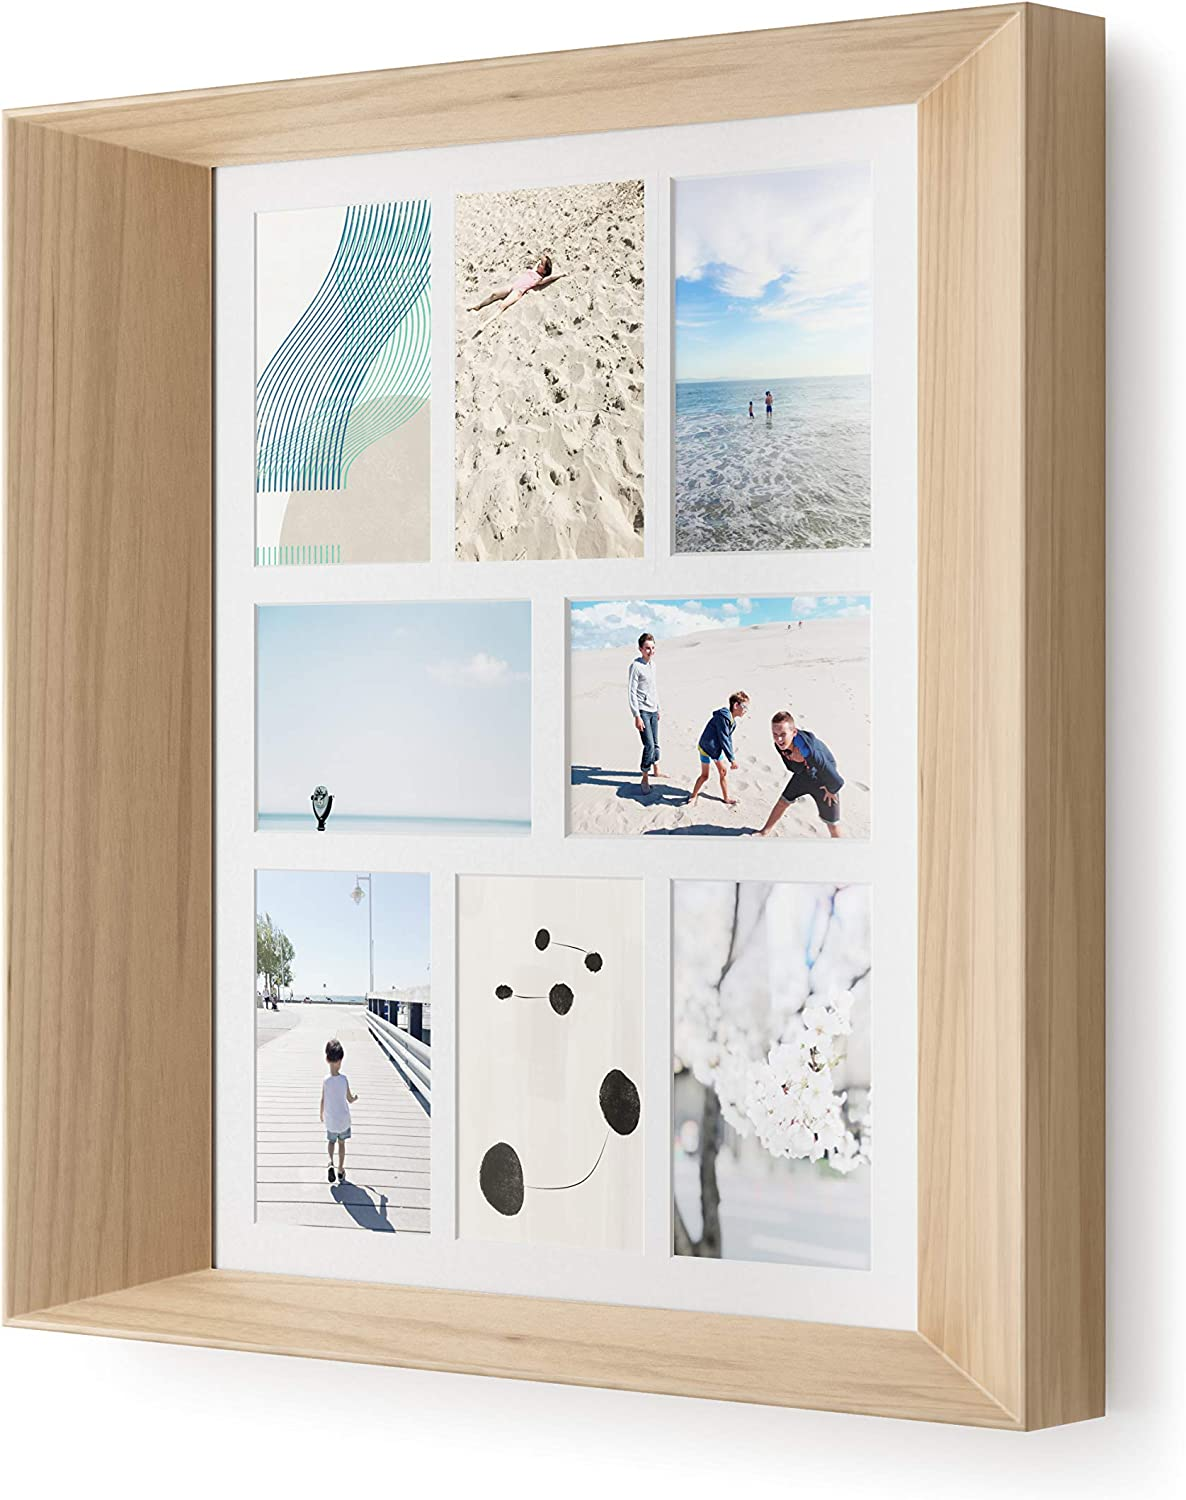 Umbra Lookout Angular Square Picture and Financial sales sale Wall for Ranking TOP13 Desktop Frame